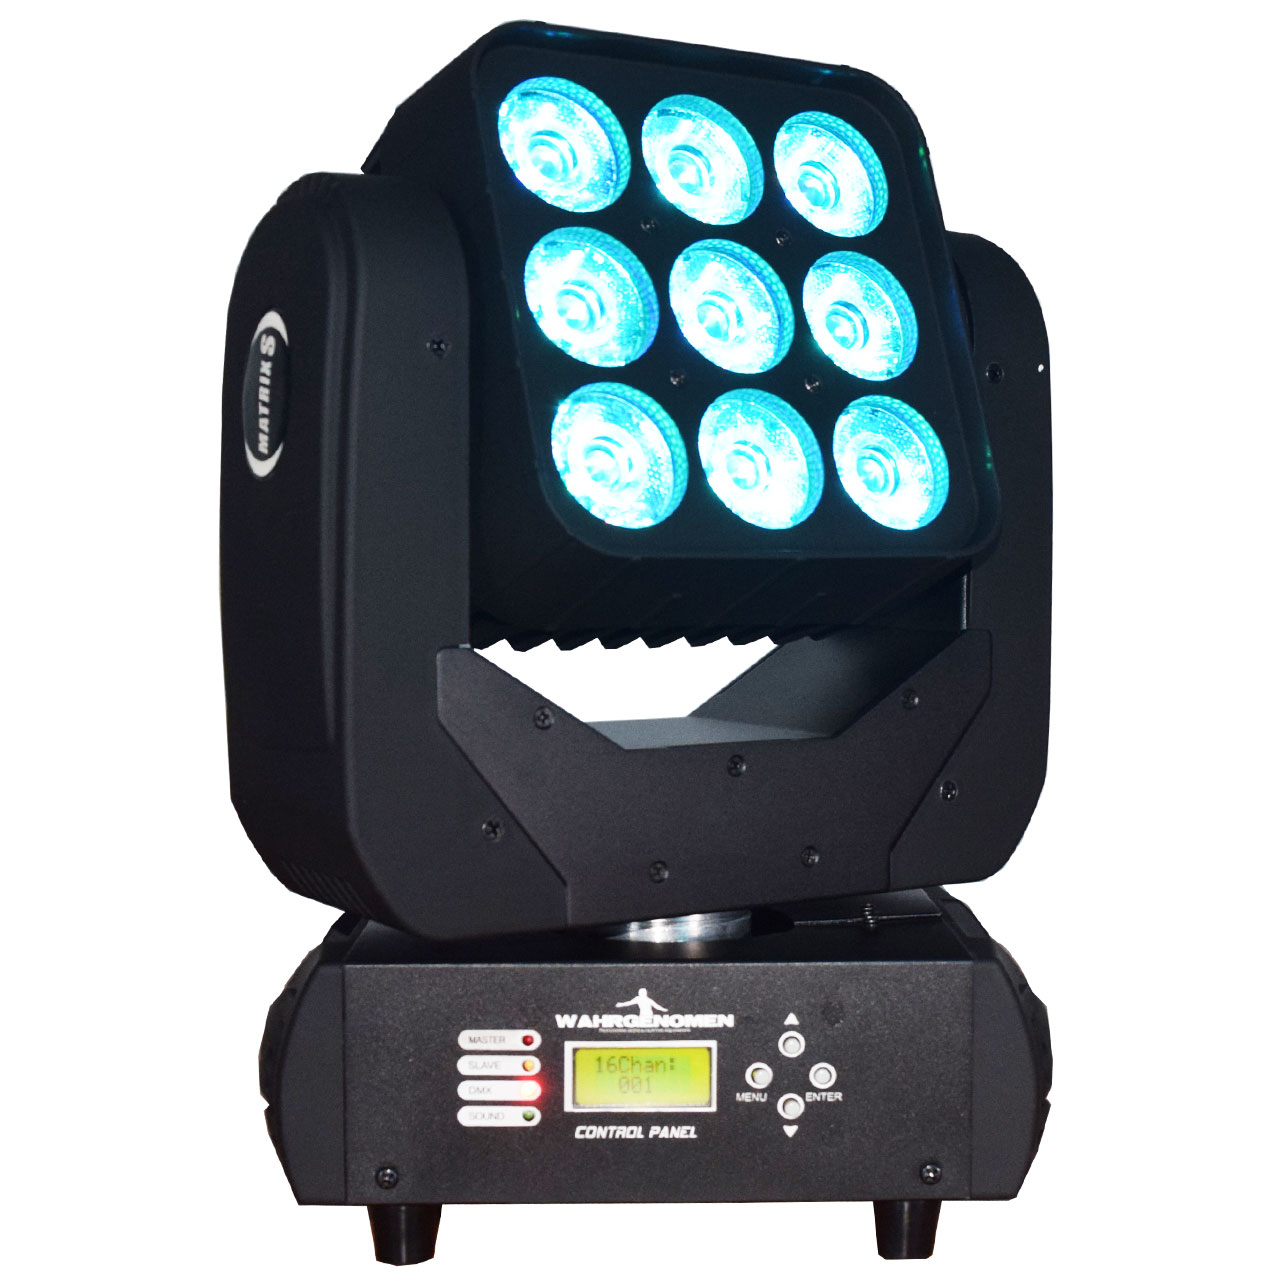 MATRIX LED Cabeza móvil led wash con matriz 9 leds de 15w logo